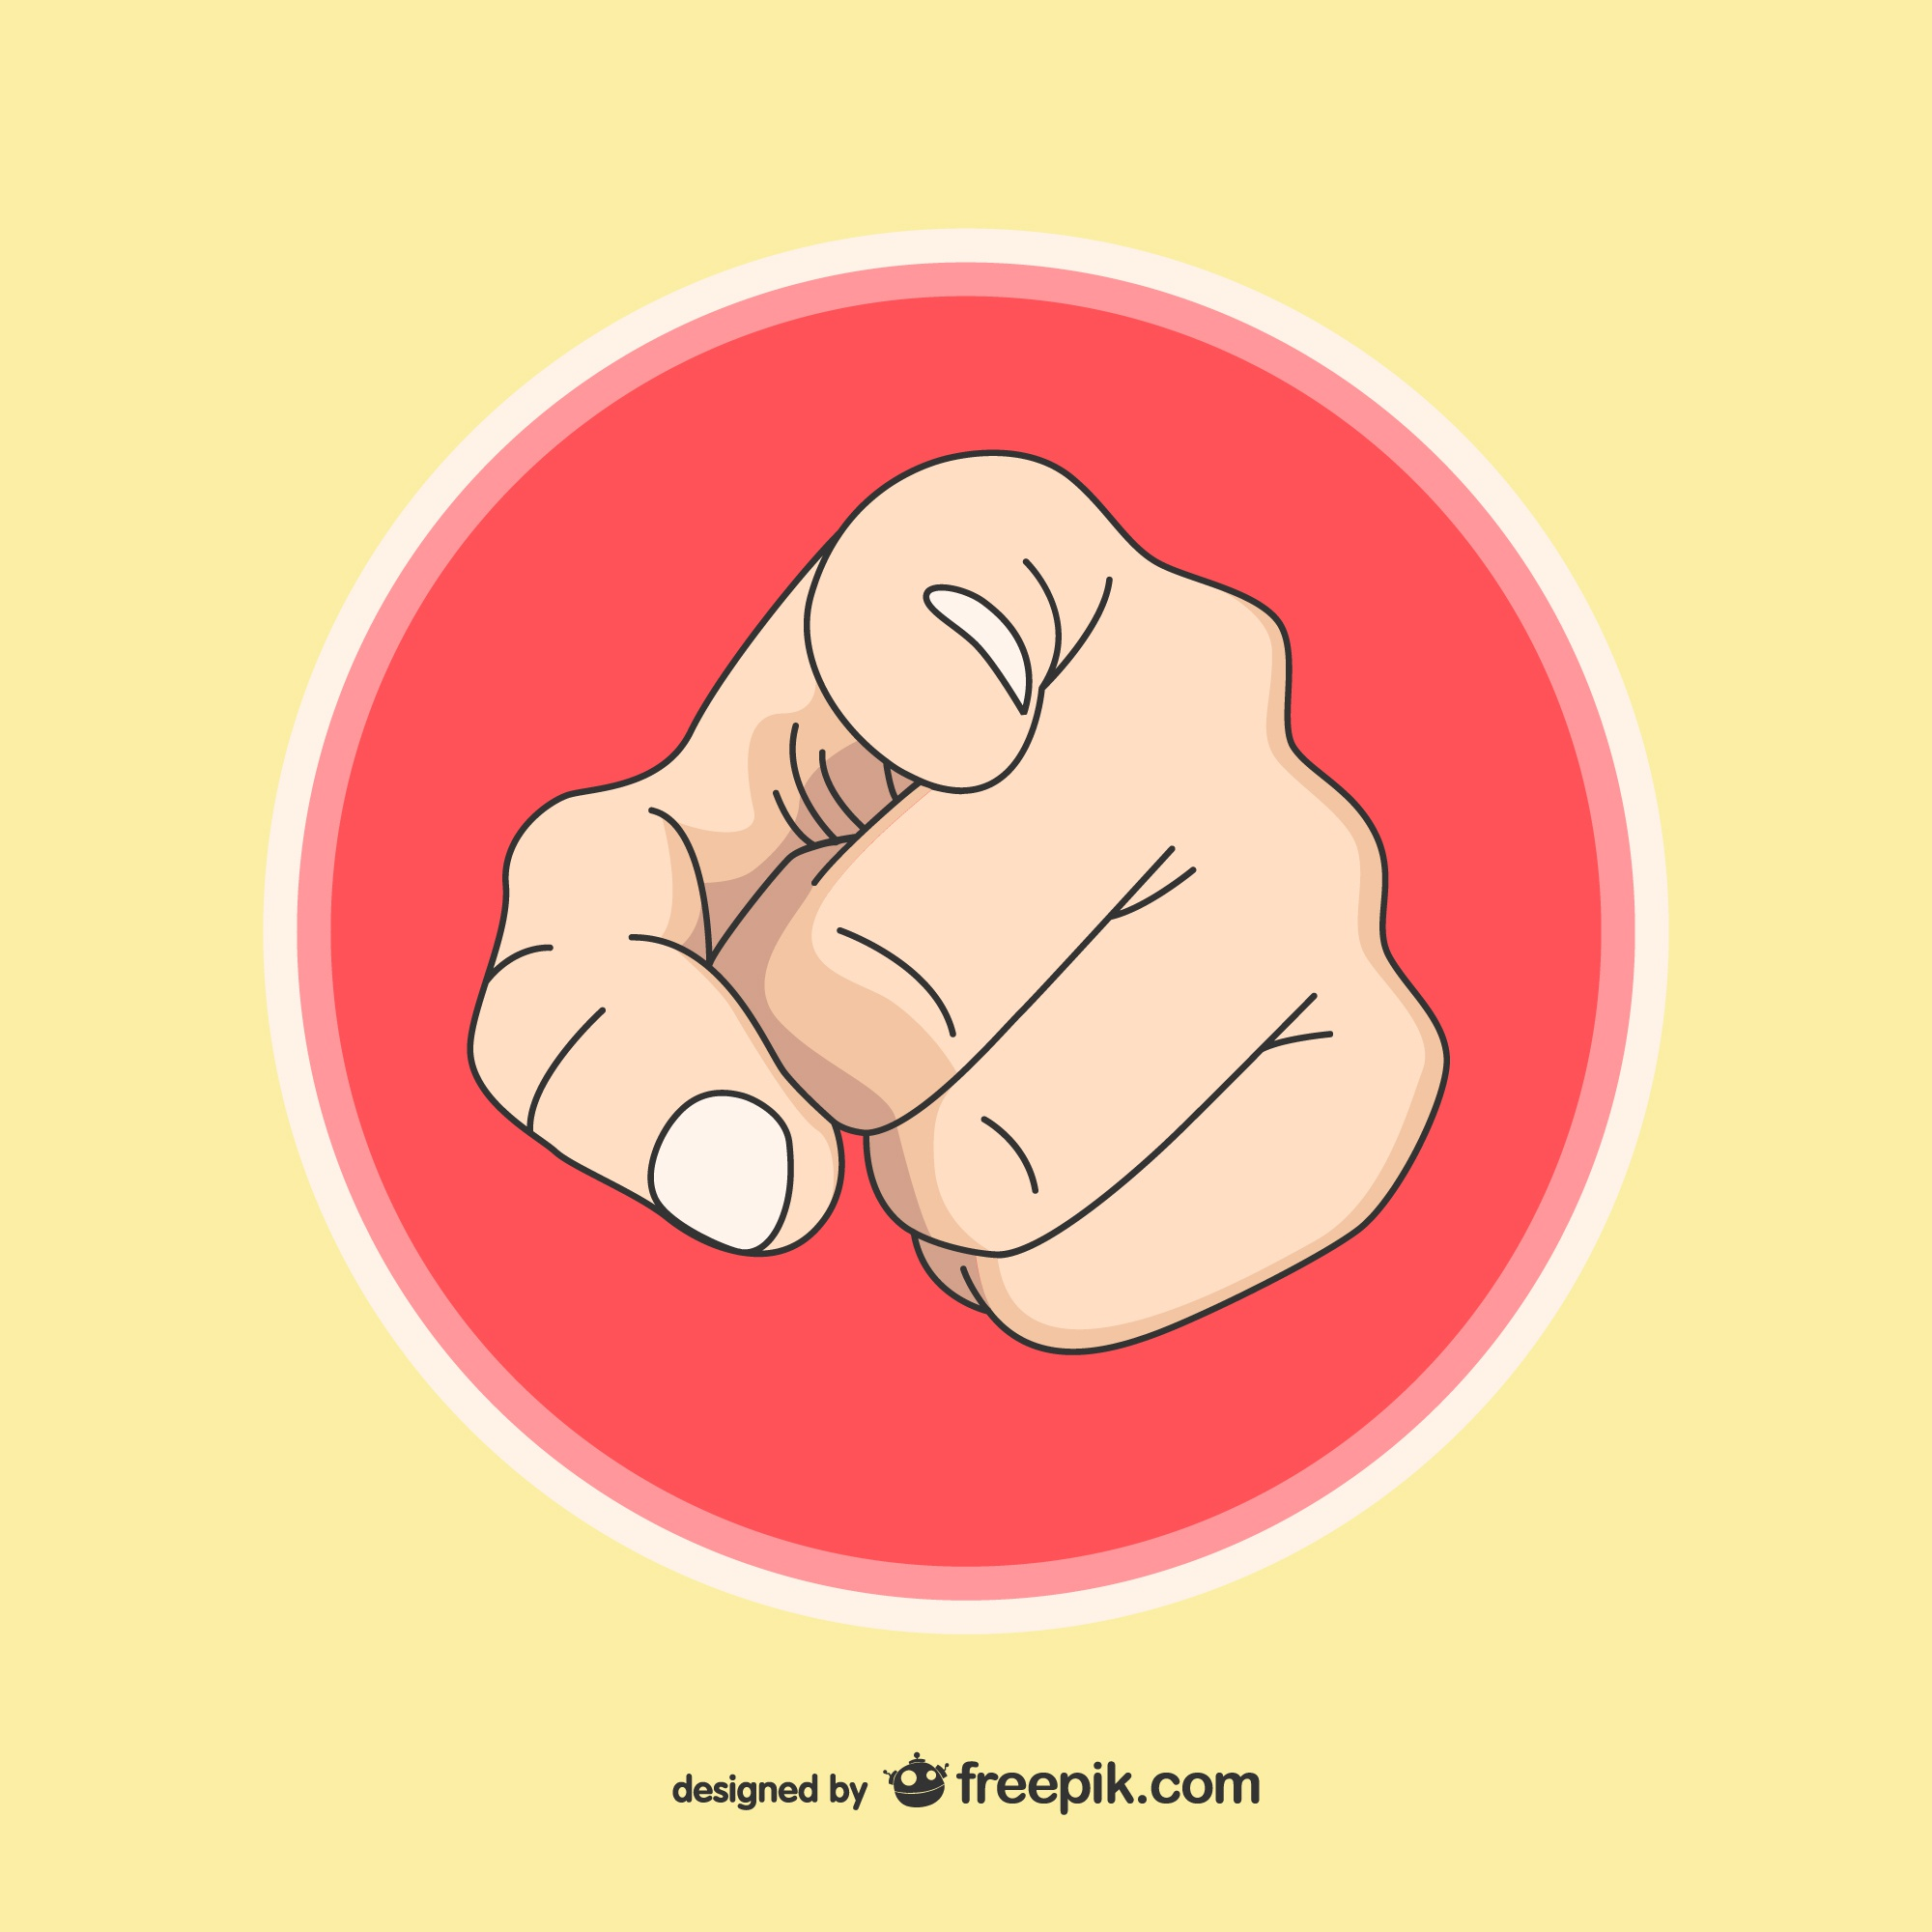 Human hand pointing you illustration